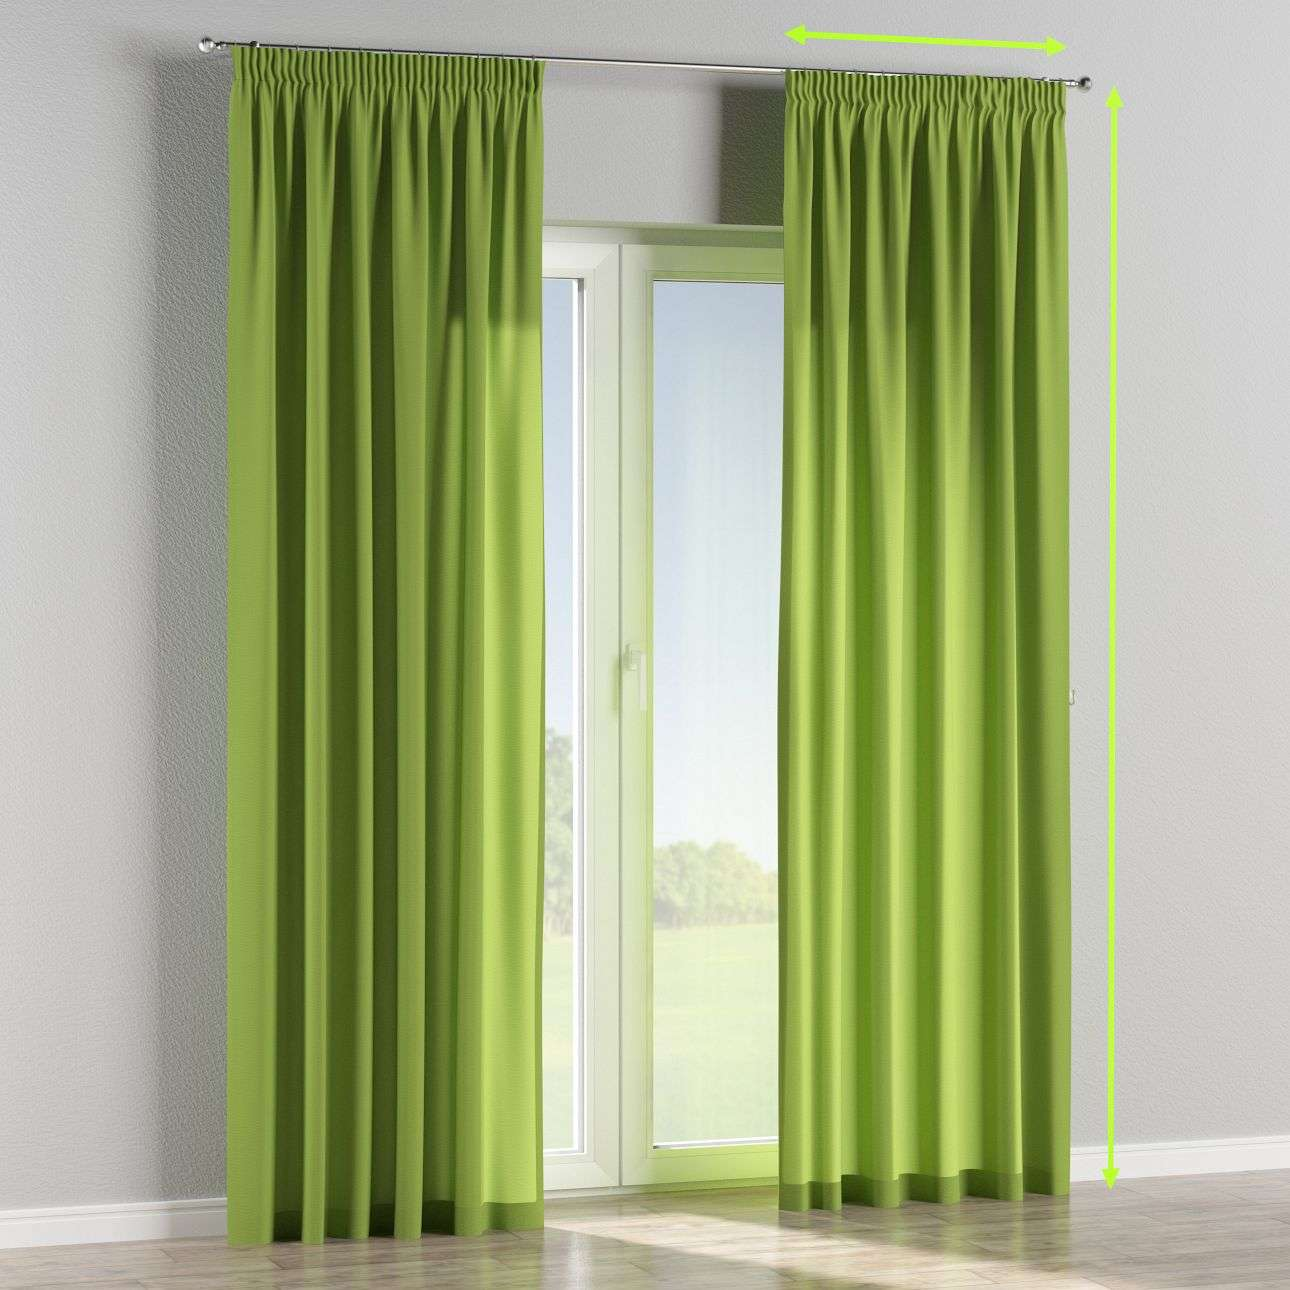 Pencil pleat curtains in collection Quadro, fabric: 136-37